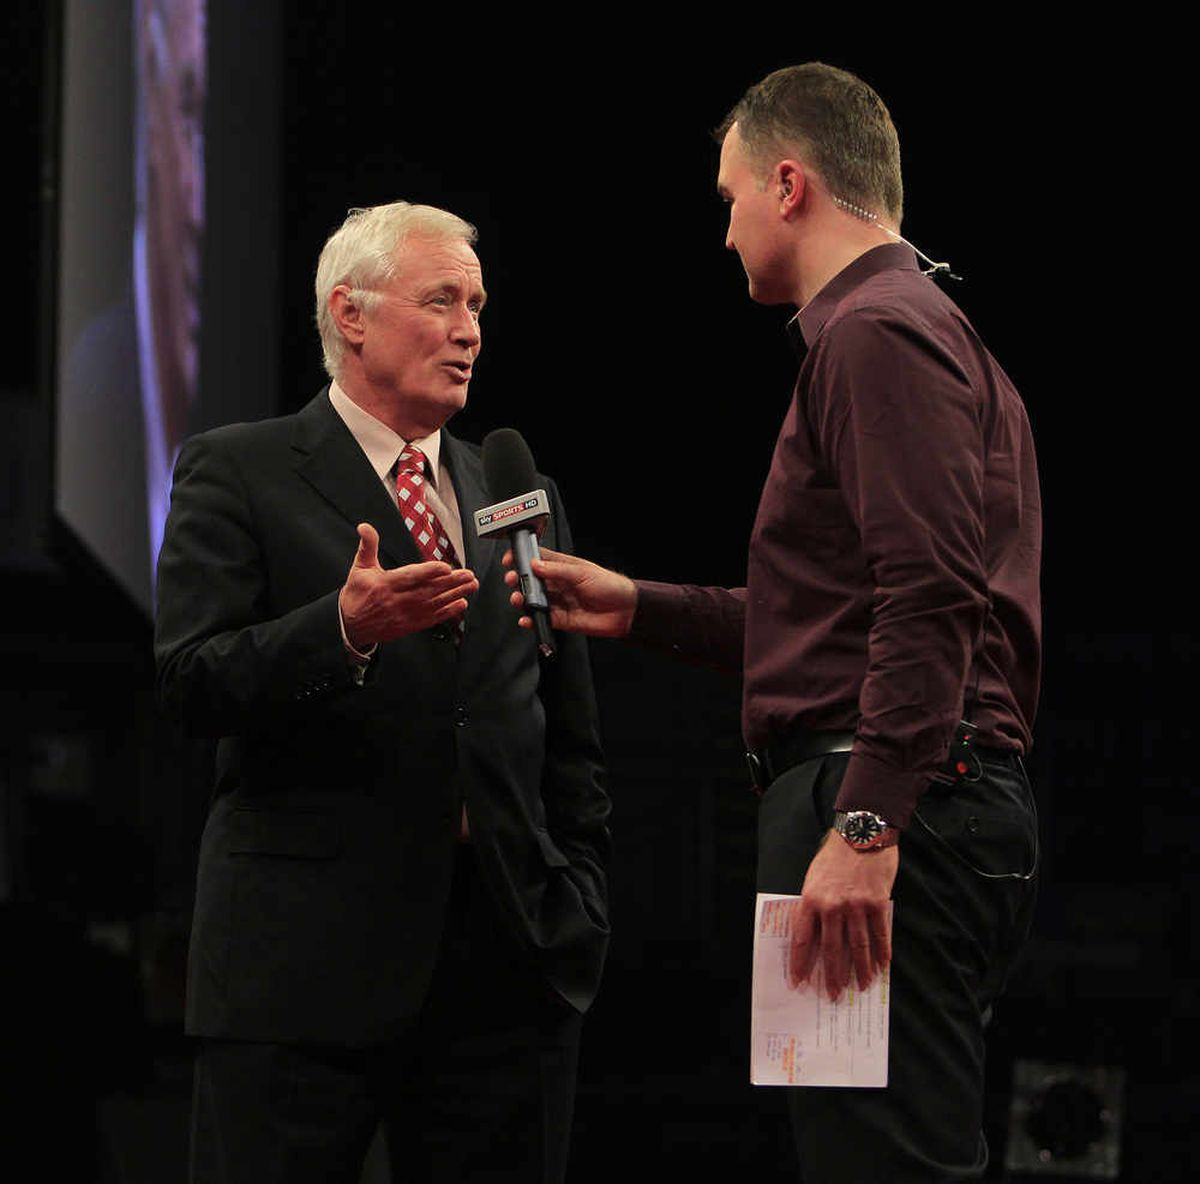 A regular fixture - Barry Hearn has worked with Sky Sports since the company formed in the early 1990s.